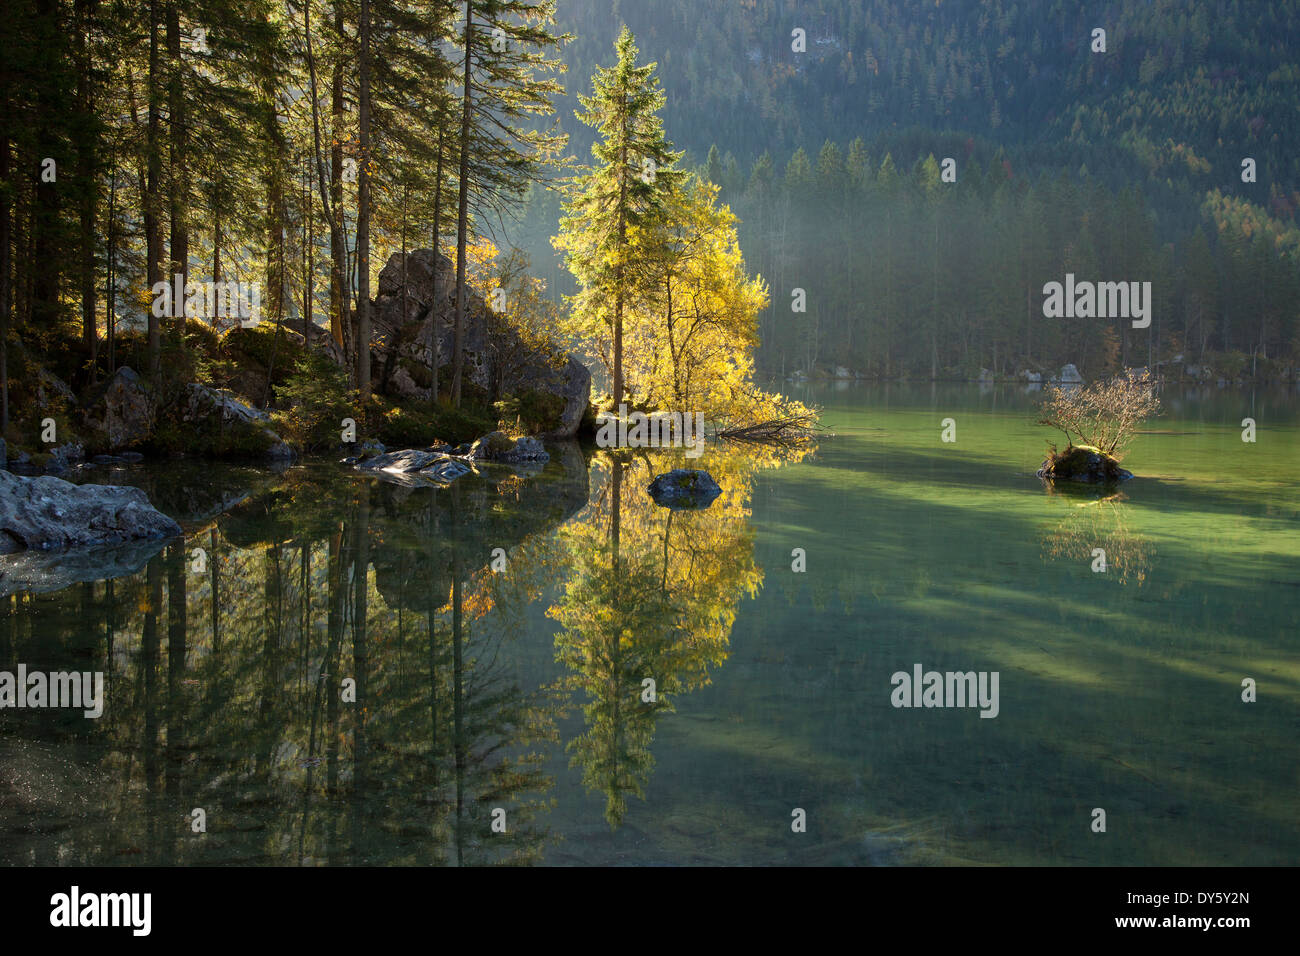 Spruces at the shore of lake Hintersee, Ramsau, Berchtesgaden region, Berchtesgaden National Park, Upper Bavaria, Germany, Europ - Stock Image